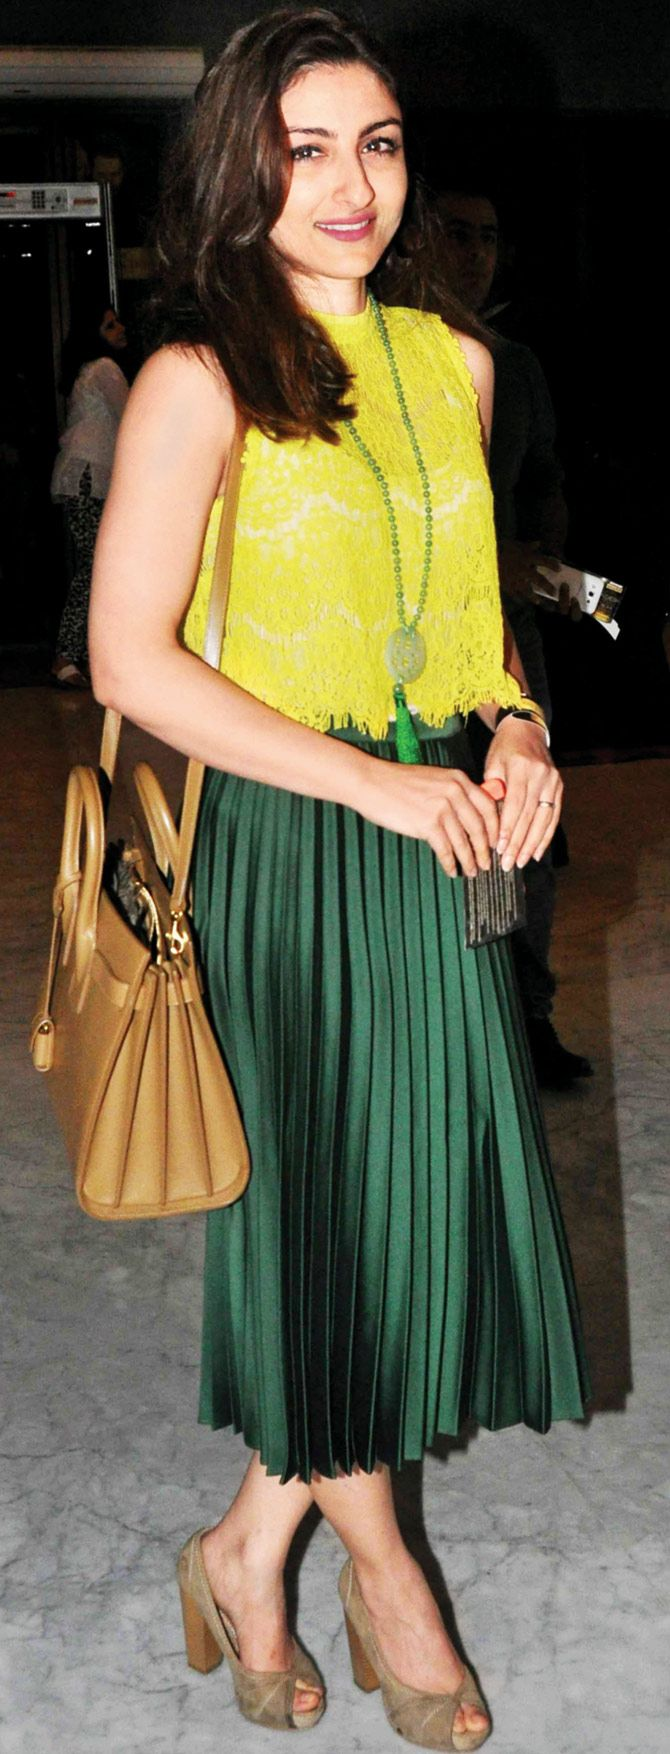 Soha Ali Khan at Indian premiere of comedy tour. #Bollywood #Fashion #Style #Beauty #Hot #Cute